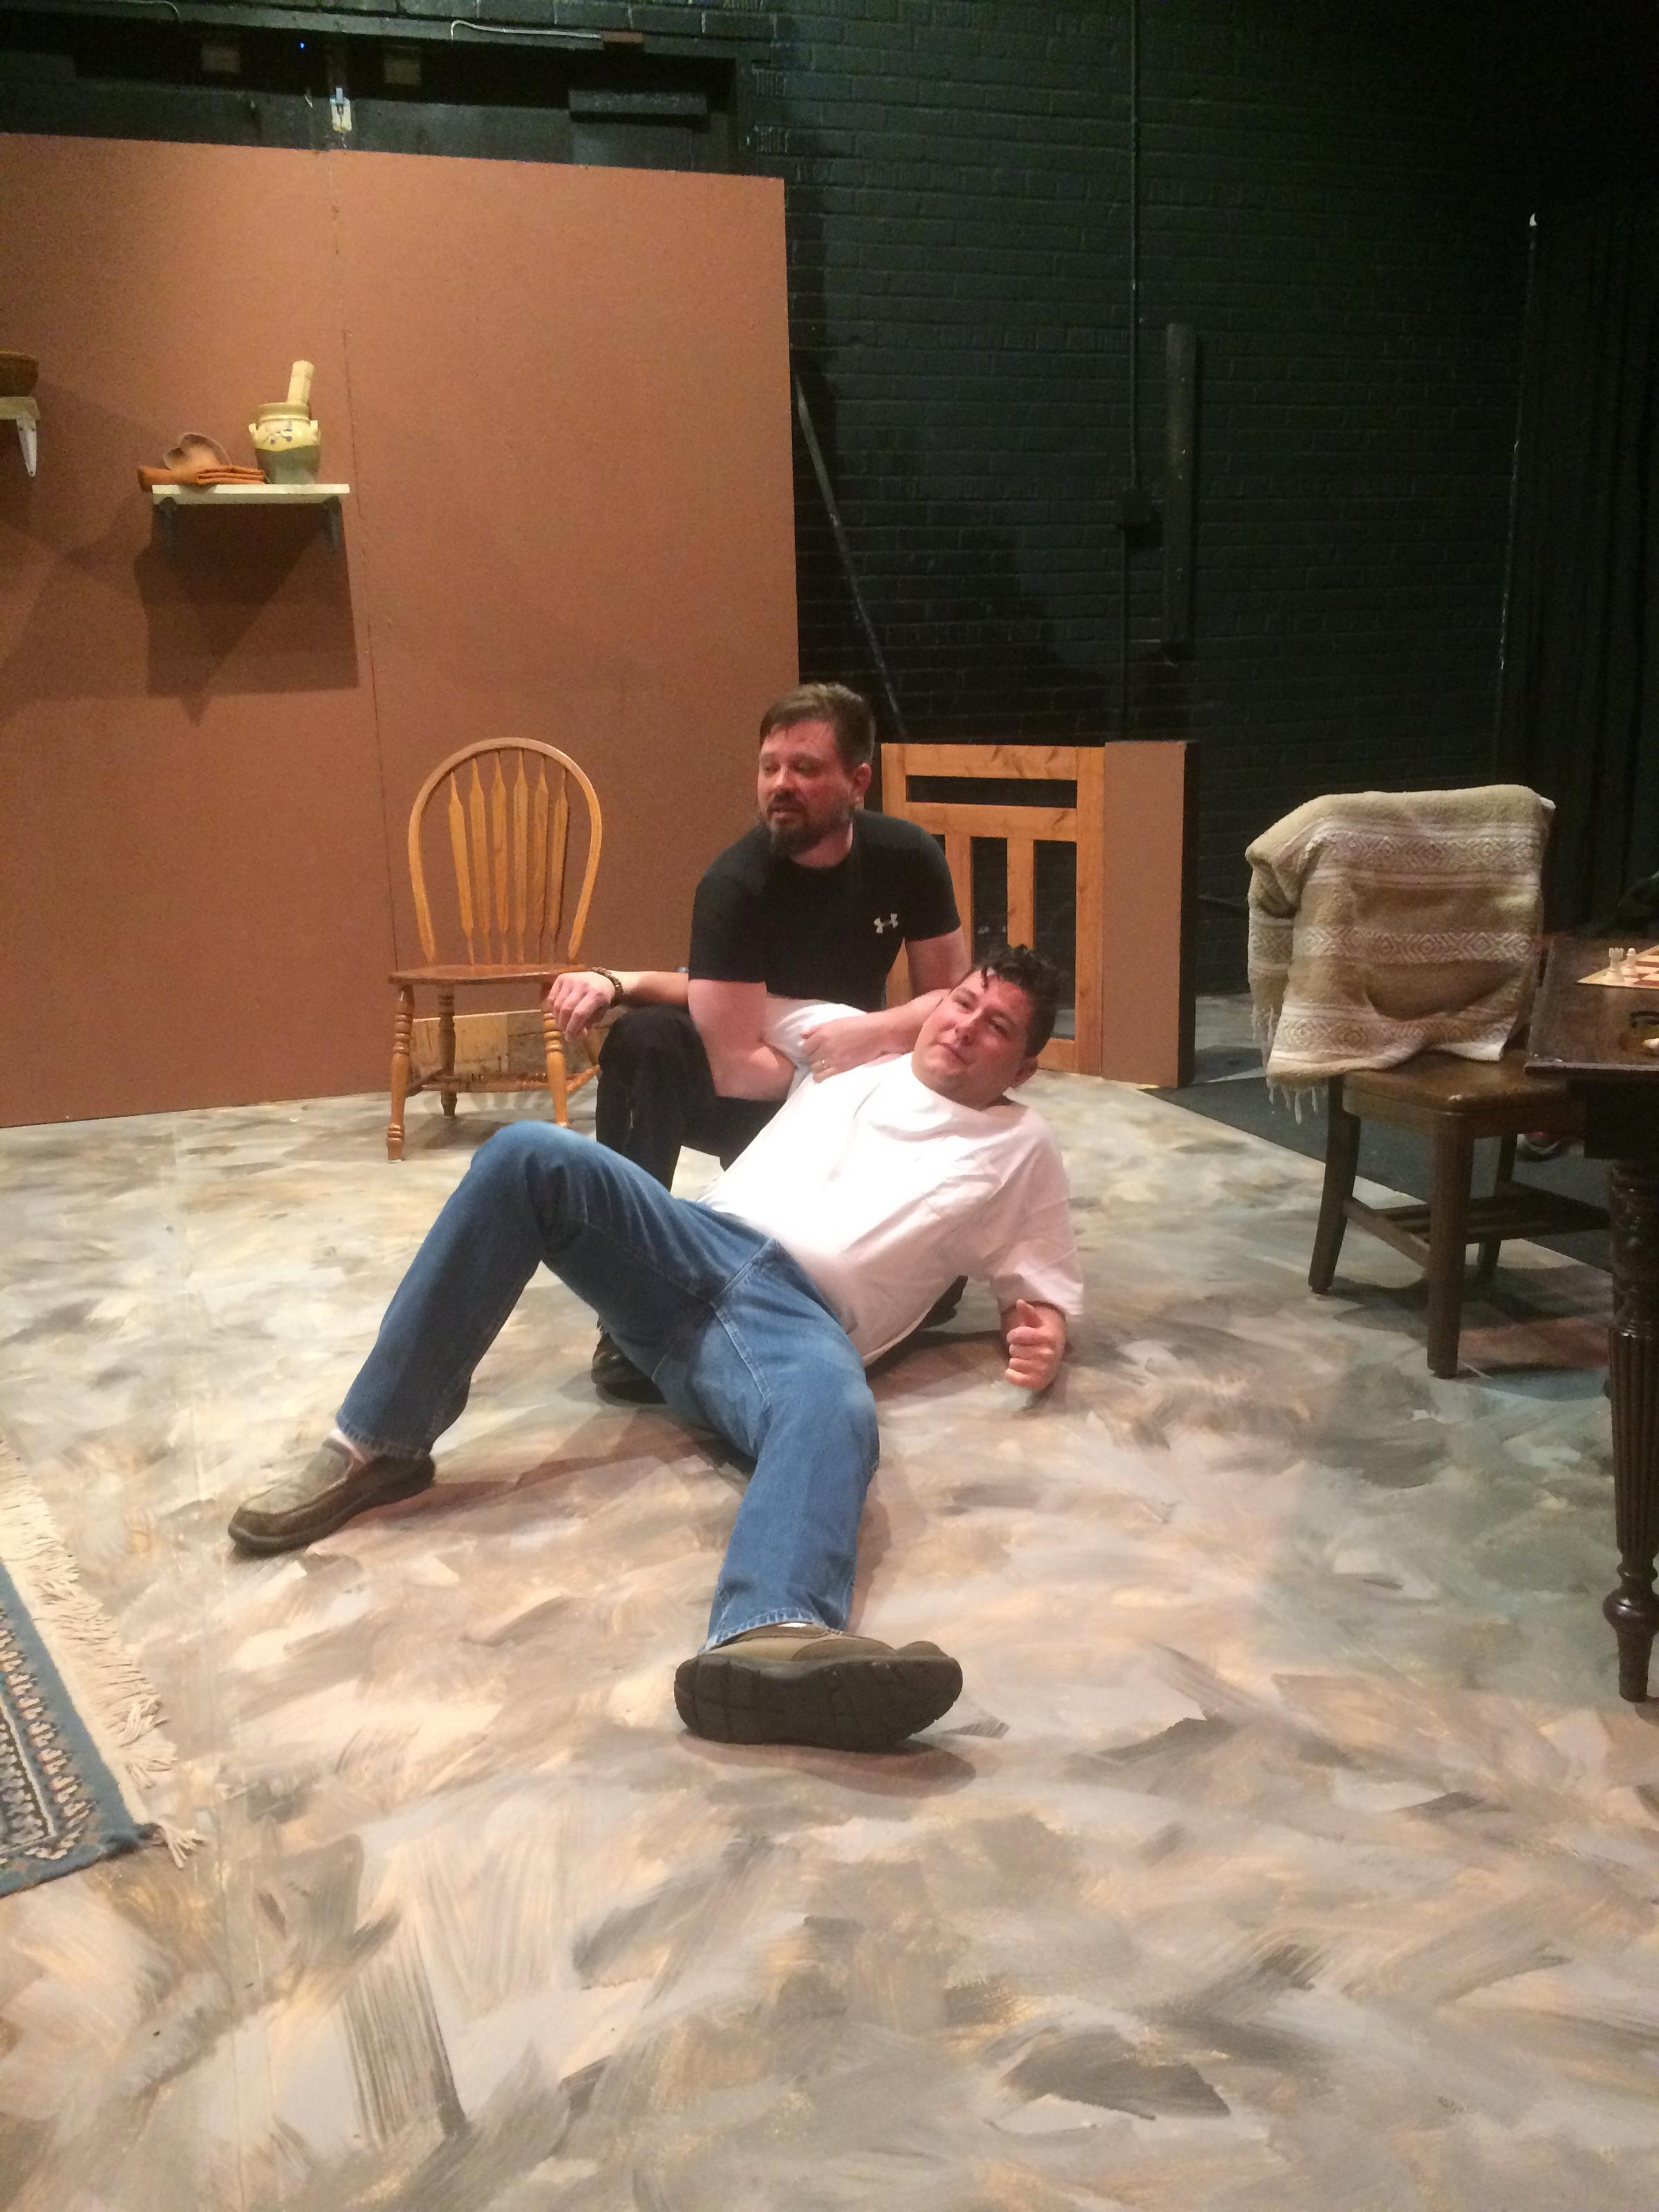 Fight Scenes Are Like Learning A Dance You Learn It Move: Lakota Playwright Uses Humor To Challenge Issues Of Racial